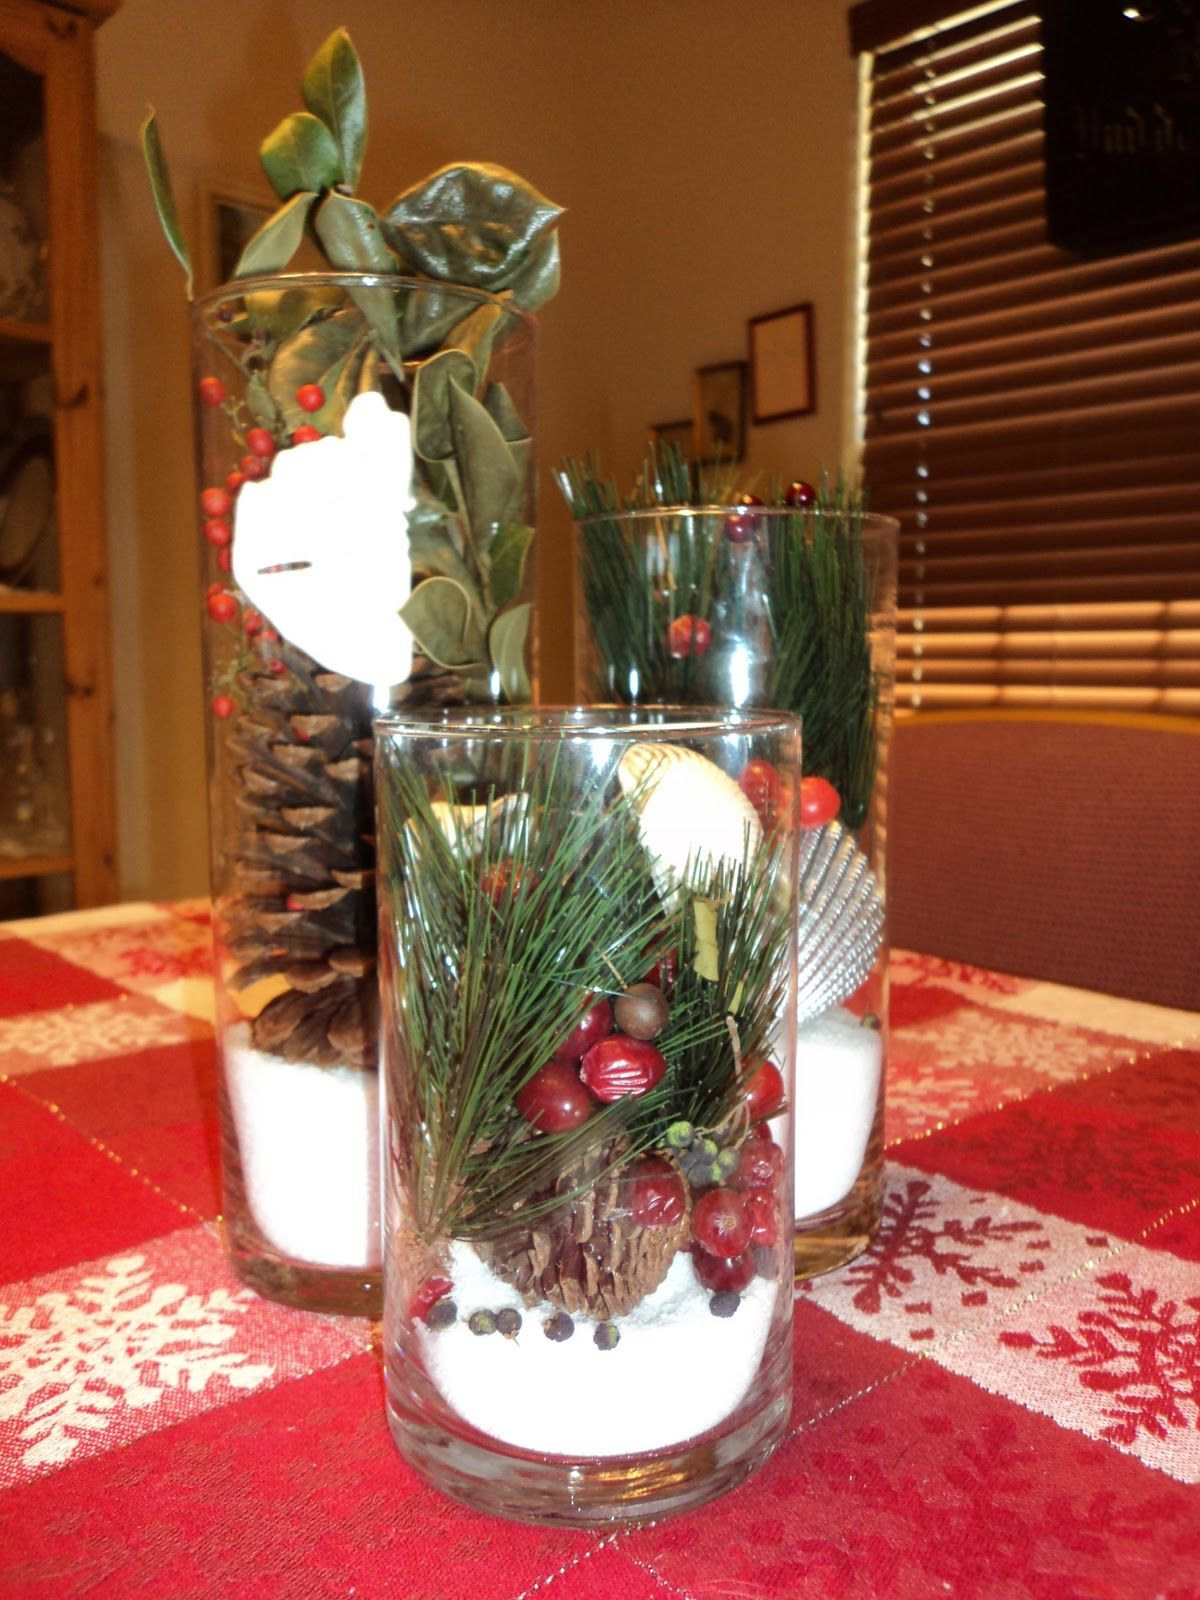 BEAUTIFUL CHRISTMAS CENTERPIECES TO ENHANCE THE BEAUTY OF YOUR TABLE